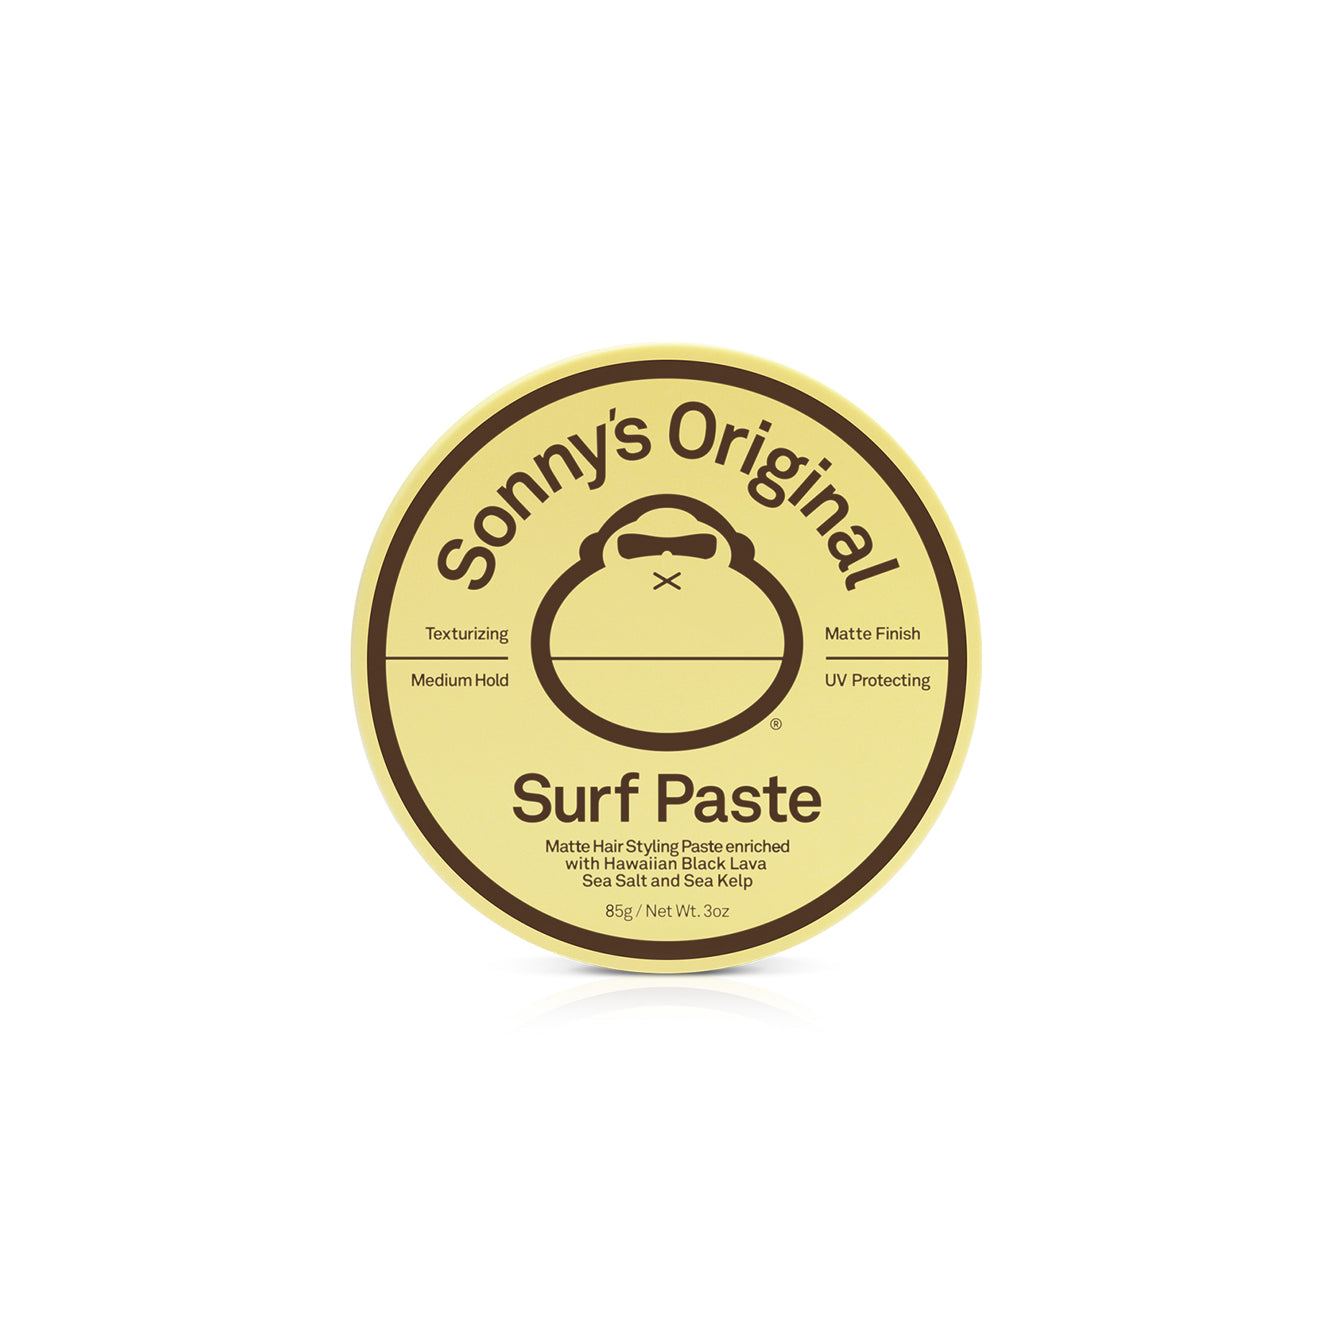 Sonny's Original Surf Paste